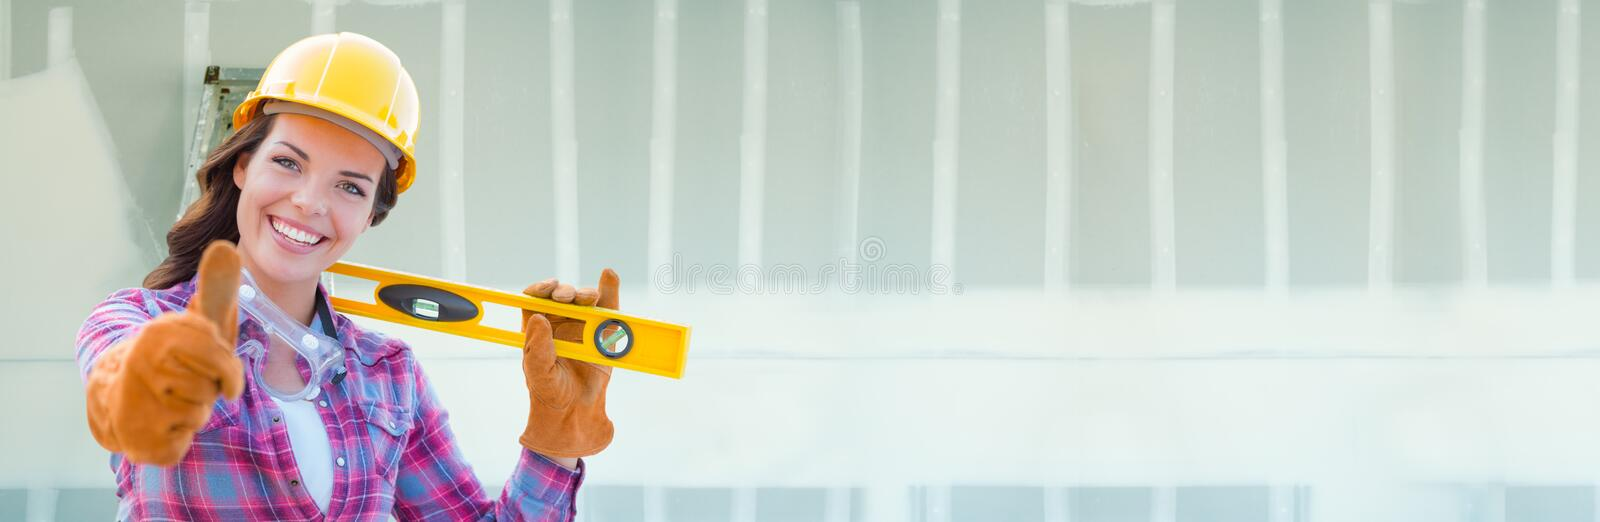 Female Contractor Wearing Hard Hat Against Drywall Banner Background with Ladder stock photo